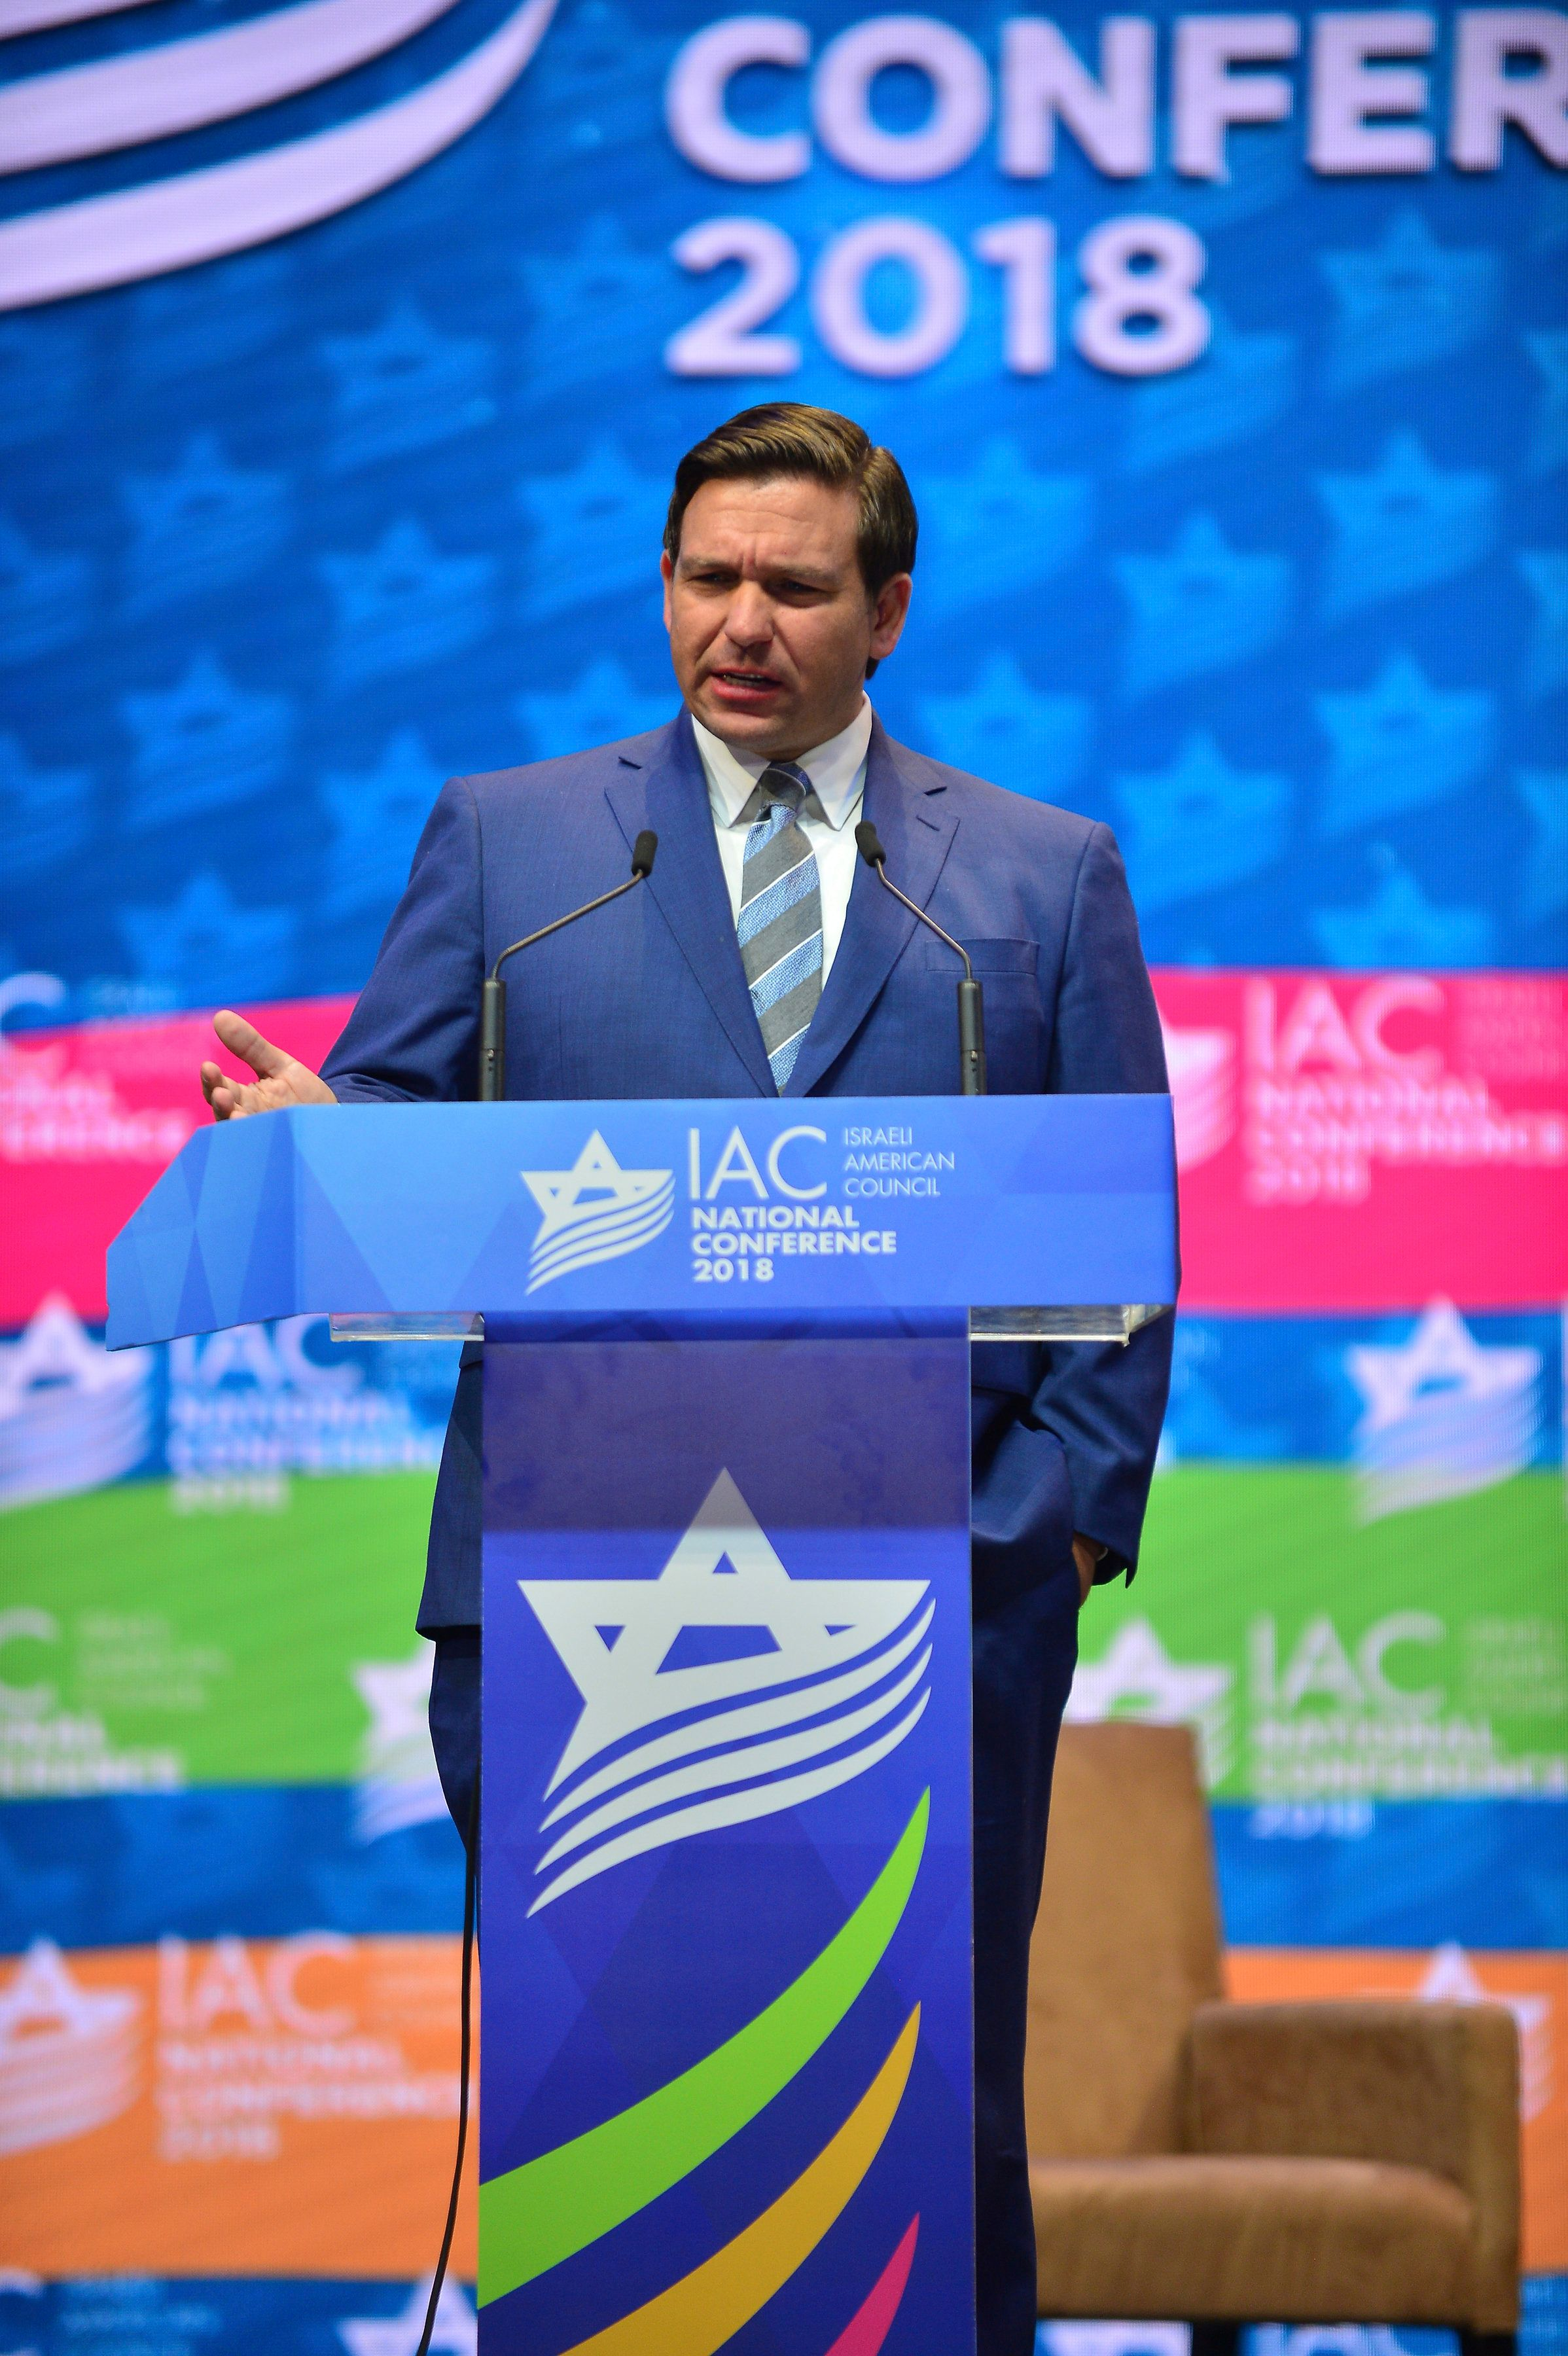 HOLLYWOOD, FL - NOVEMBER 30: Florida Governor elect Ron DeSantis attends and speak at the 5th Israeli-American Council National Conference at the Westin Diplomat Resort Hollywood on November 30, 2018 in Hollywood, Florida. Credit: MPI10 / MediaPunch /IPX